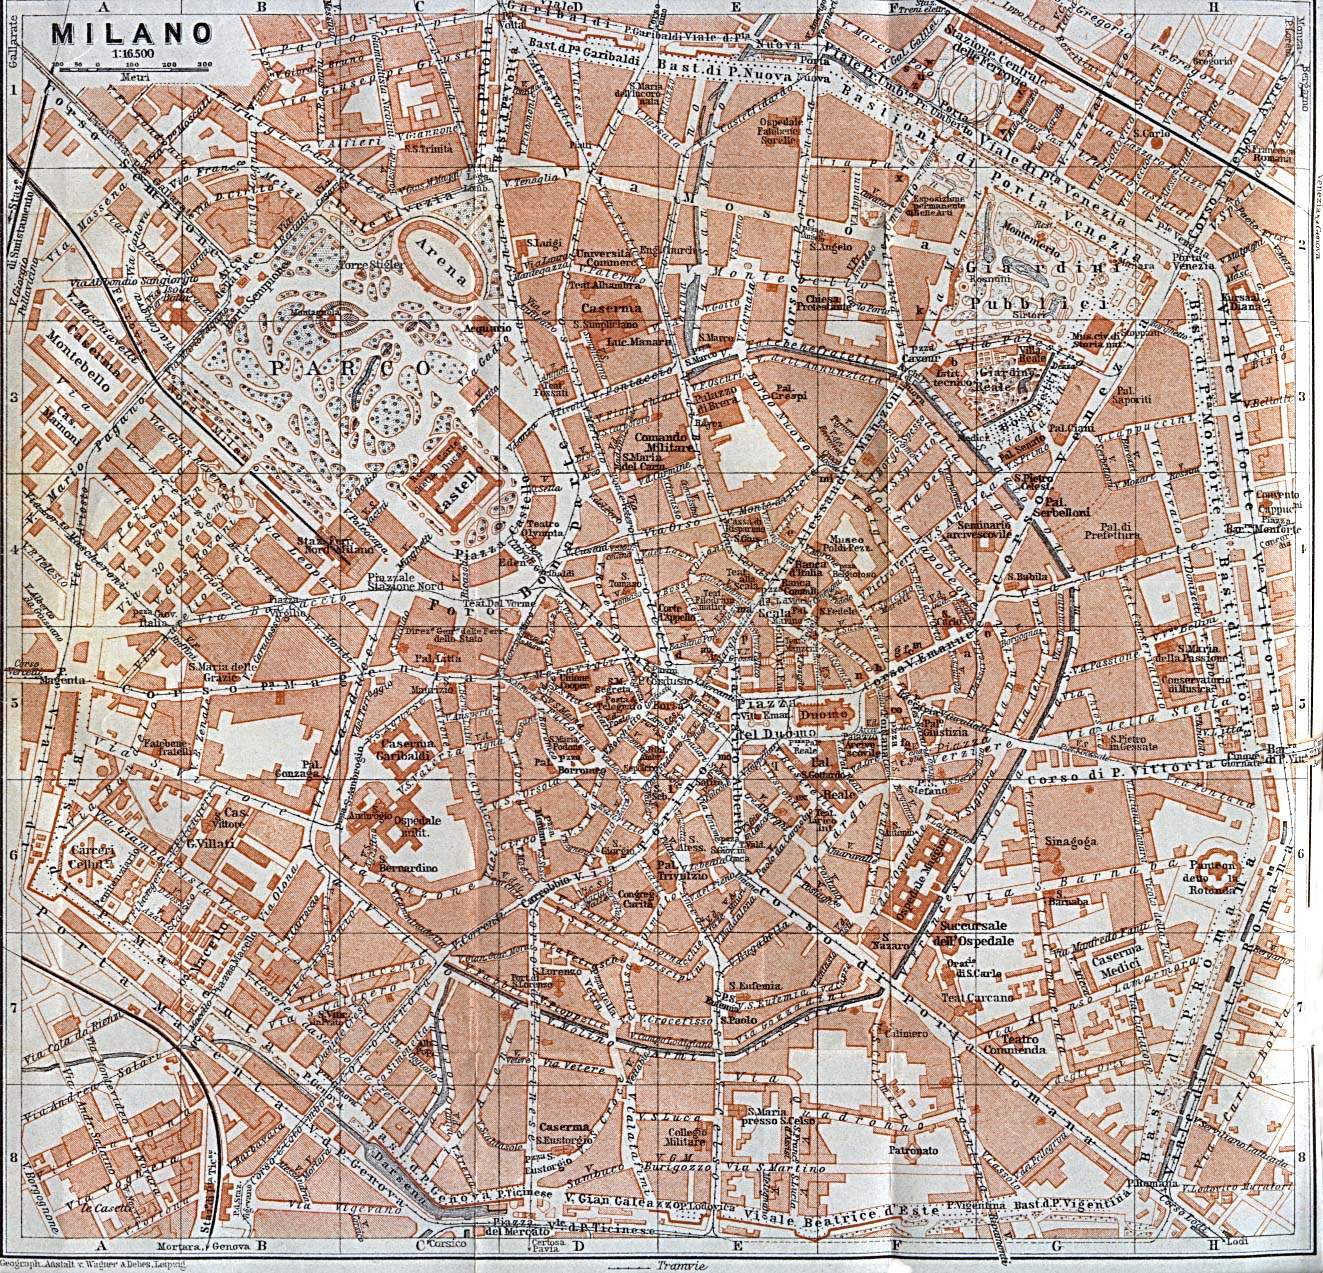 Large Milan Maps for Free Download – Milan Tourist Attractions Map